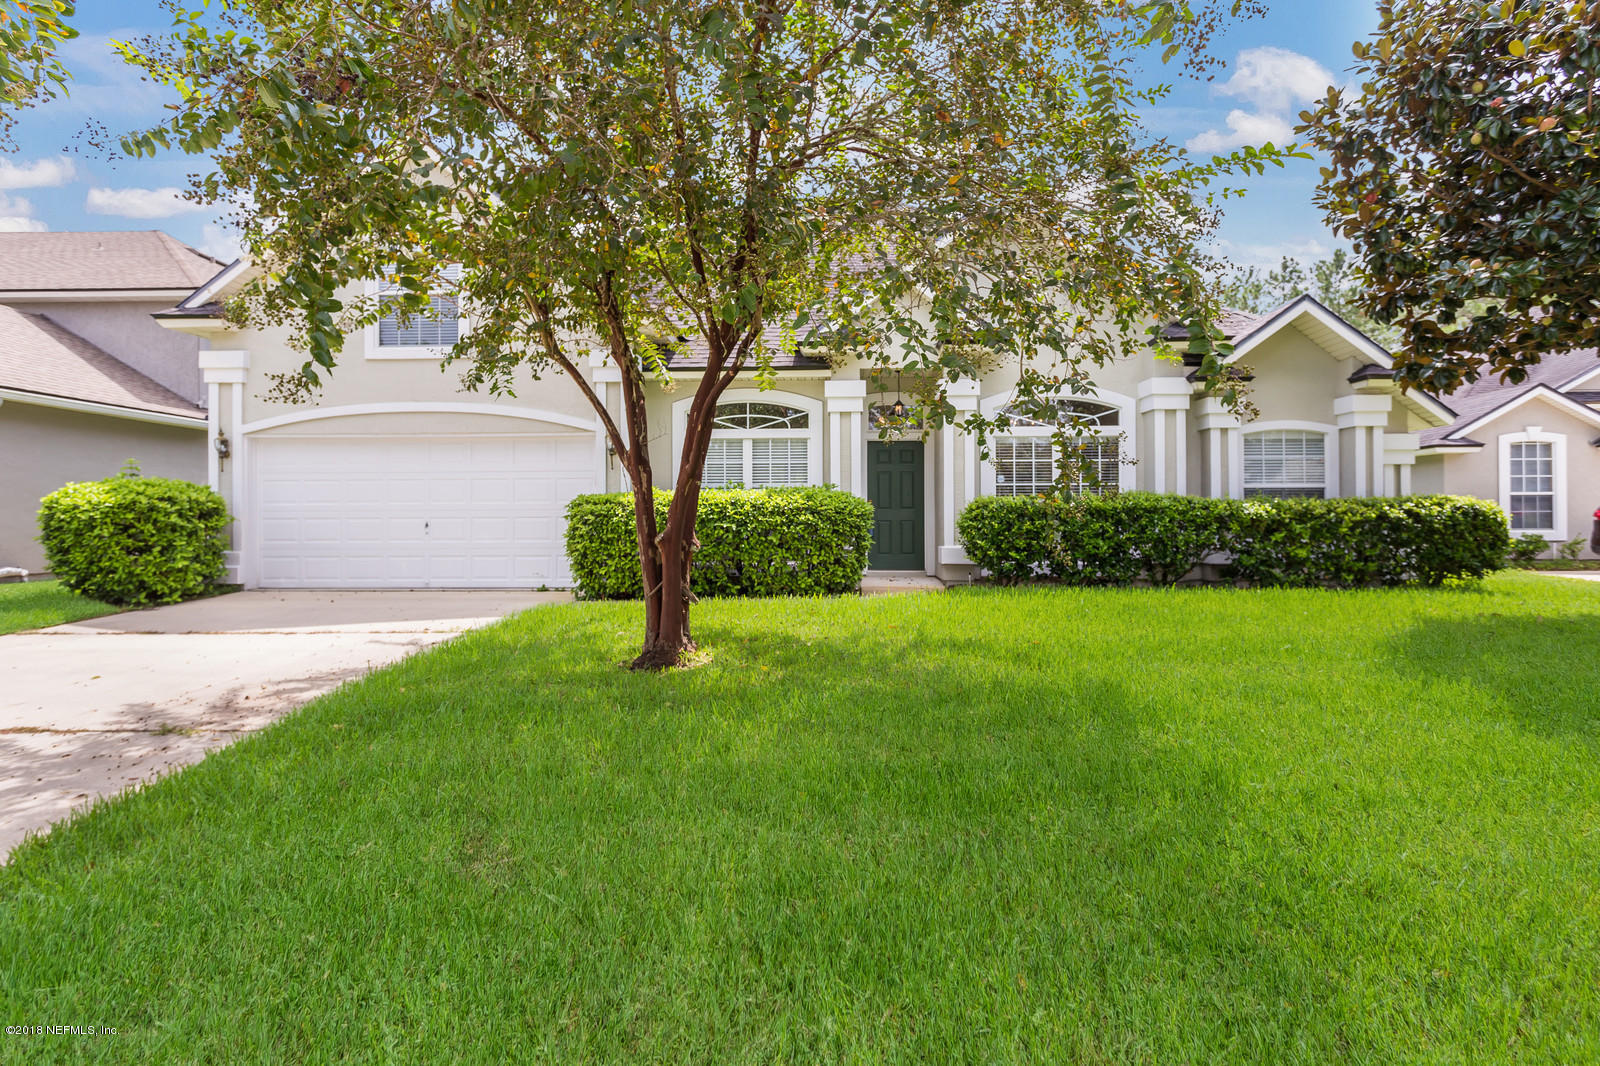 2061 JIMMY, ST JOHNS, FLORIDA 32259, 5 Bedrooms Bedrooms, ,3 BathroomsBathrooms,Residential - single family,For sale,JIMMY,955937